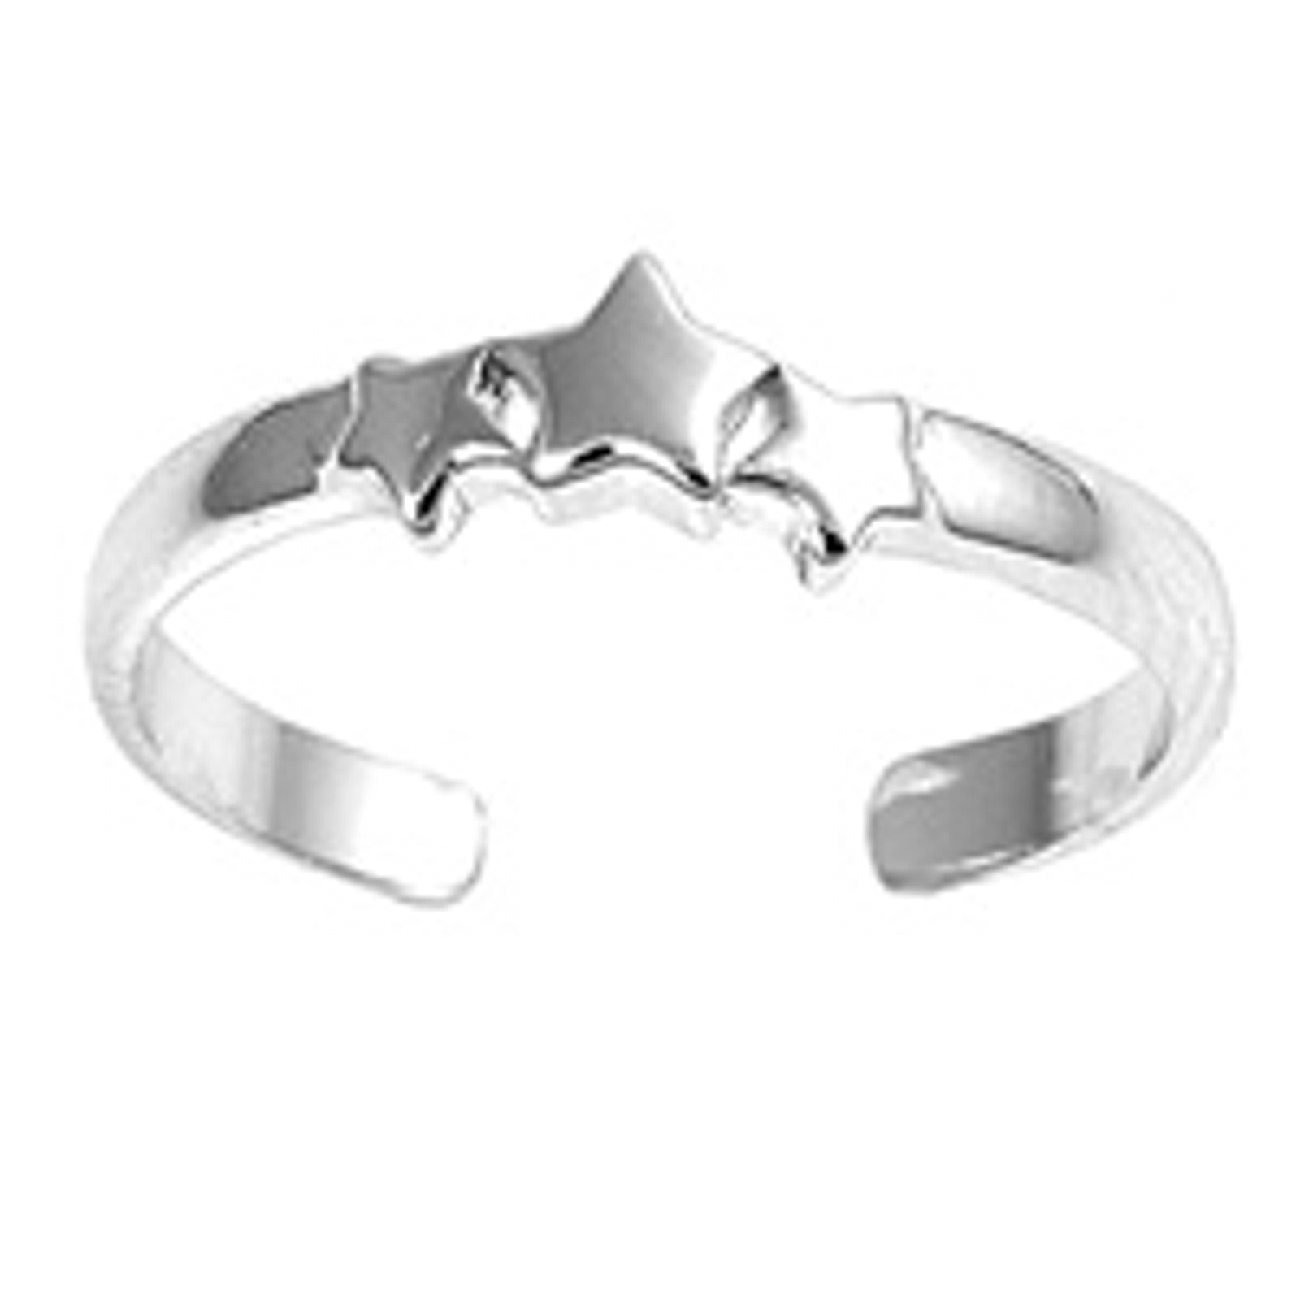 Three Plain Stars Adjustable Toe Ring